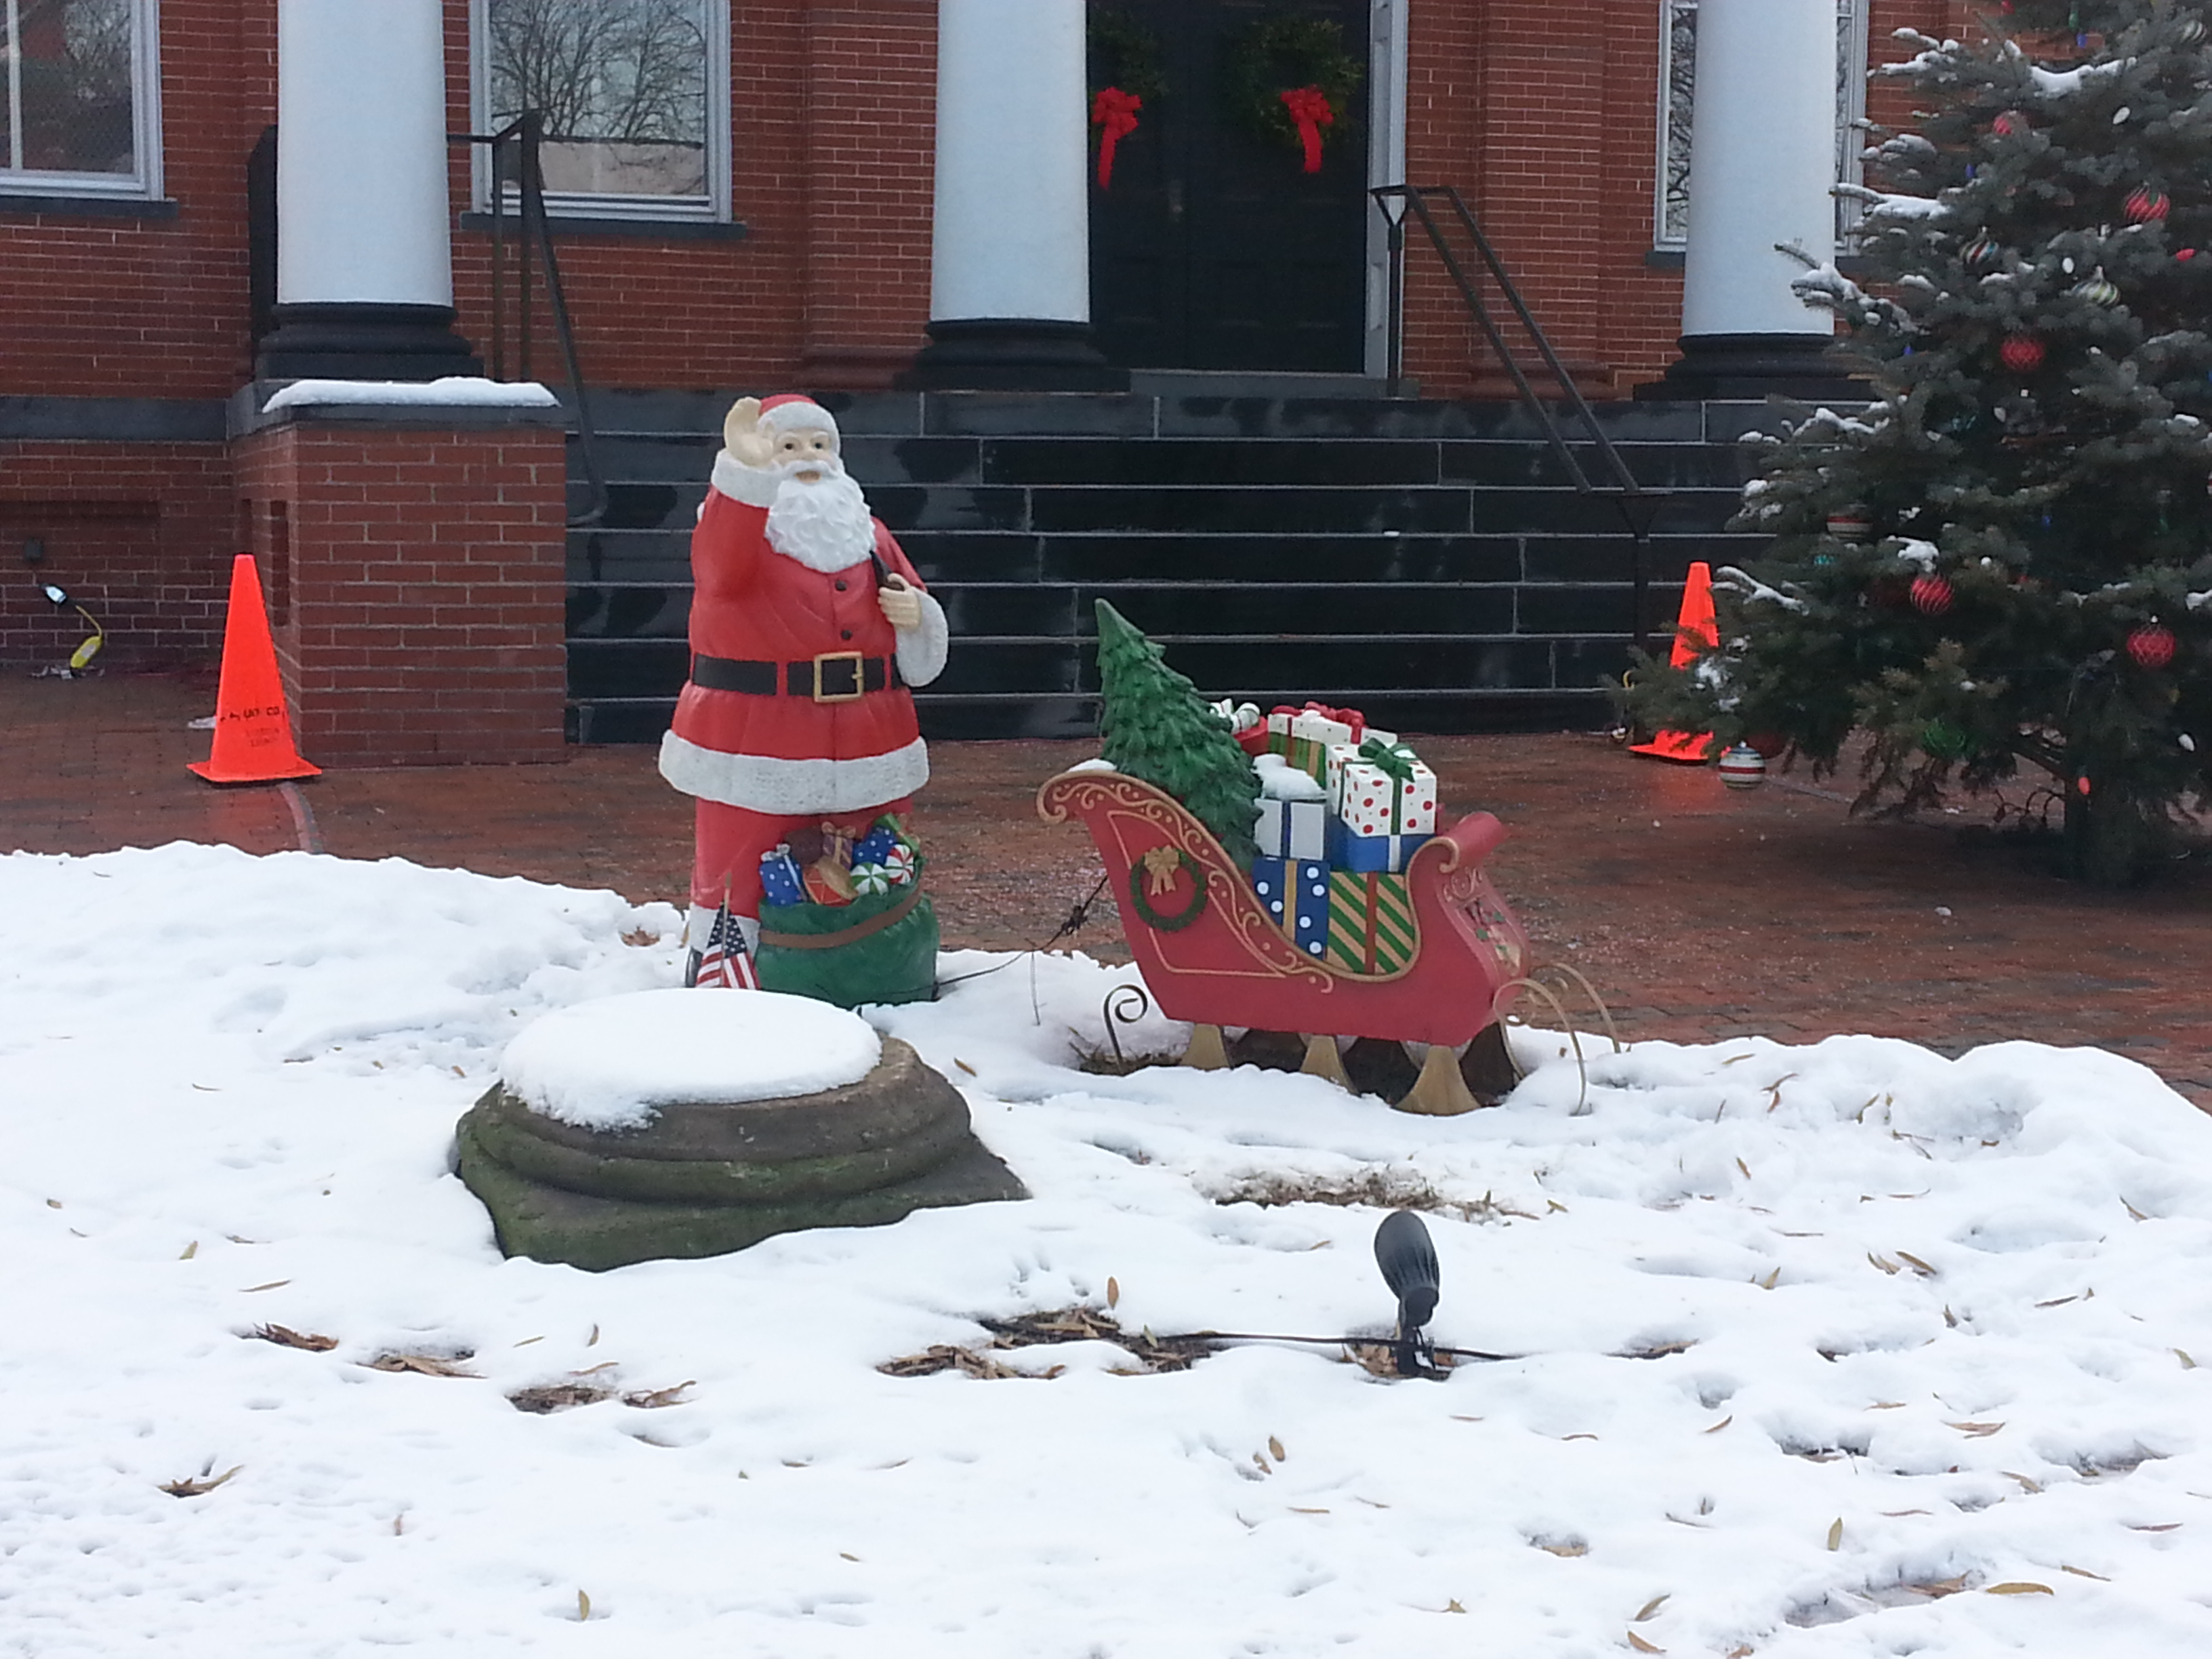 One of the county-sponsored holiday decorations that sits in front of the courthouse includes Santa with his sleigh of presents and a decorated Christmas tree. Photo credit: Jack Minchew